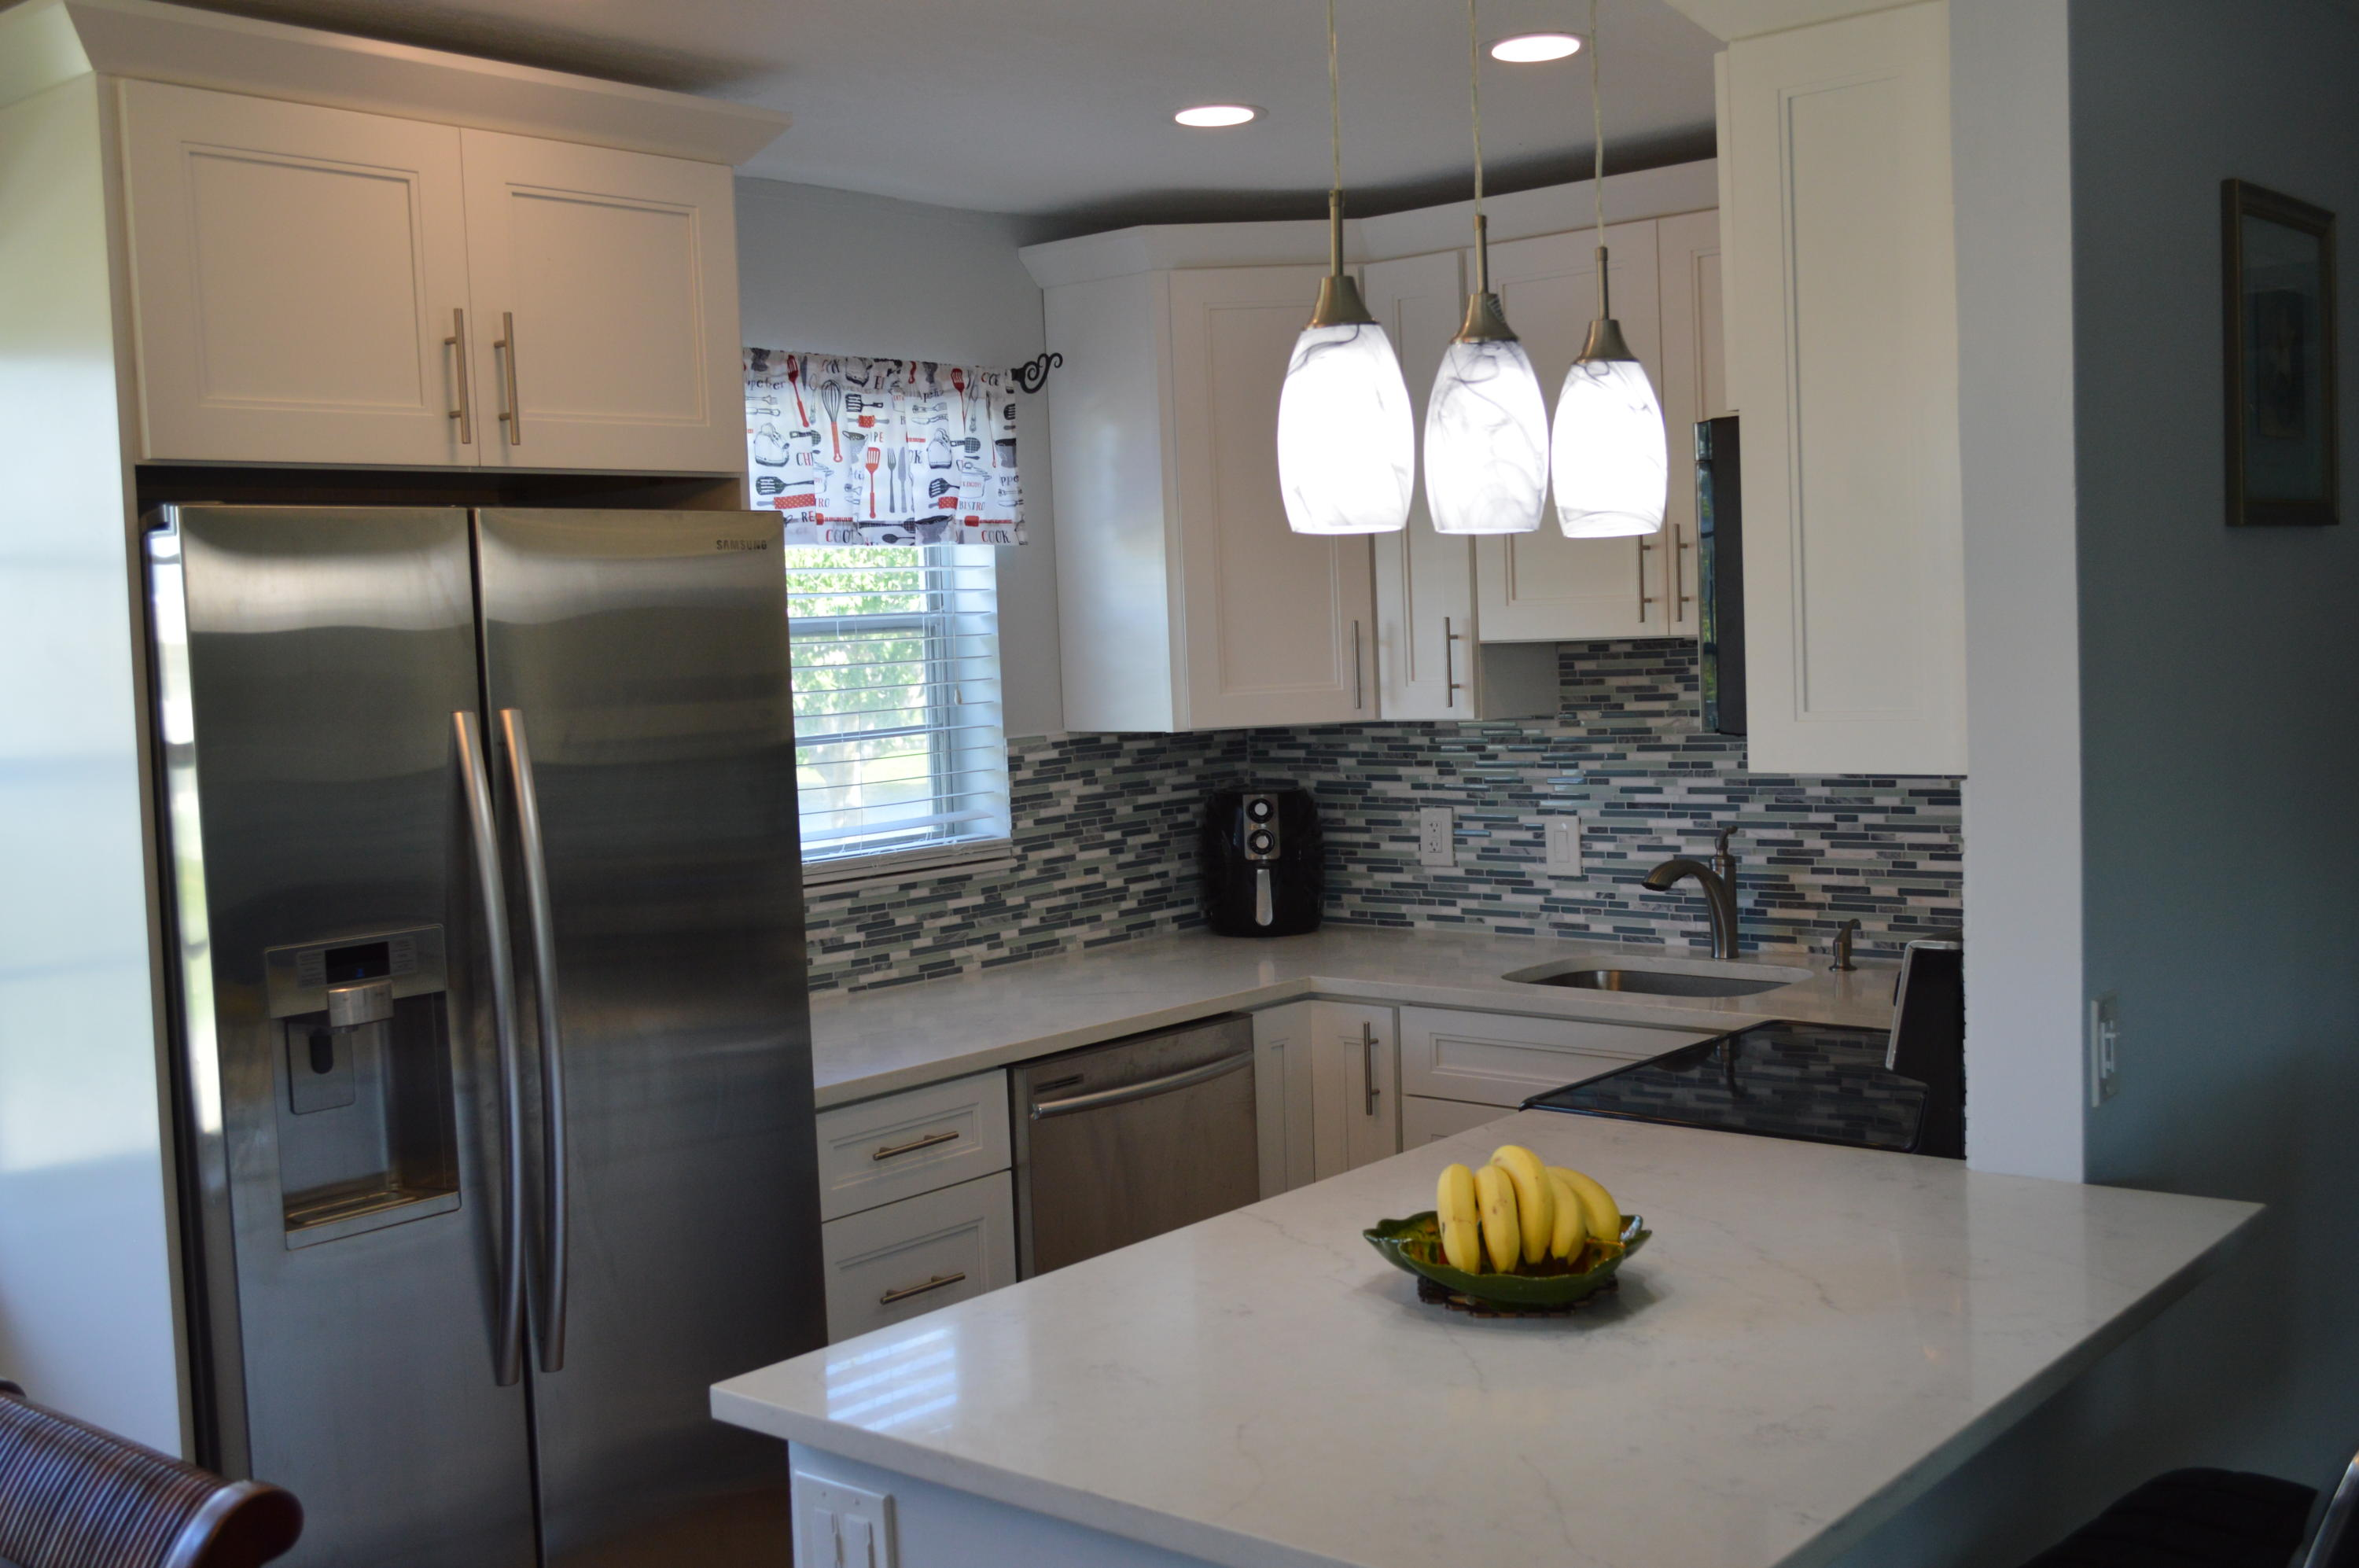 Beautifully updated 2 Bedroom 1 and 1/2 baths, much sought after, corner unit in Century Village - Kitchen recently updated, new appliances, new backsplash, new cabinets and bathrooms have been updated as well as the flooring.  This is priced to sell, it will not last.